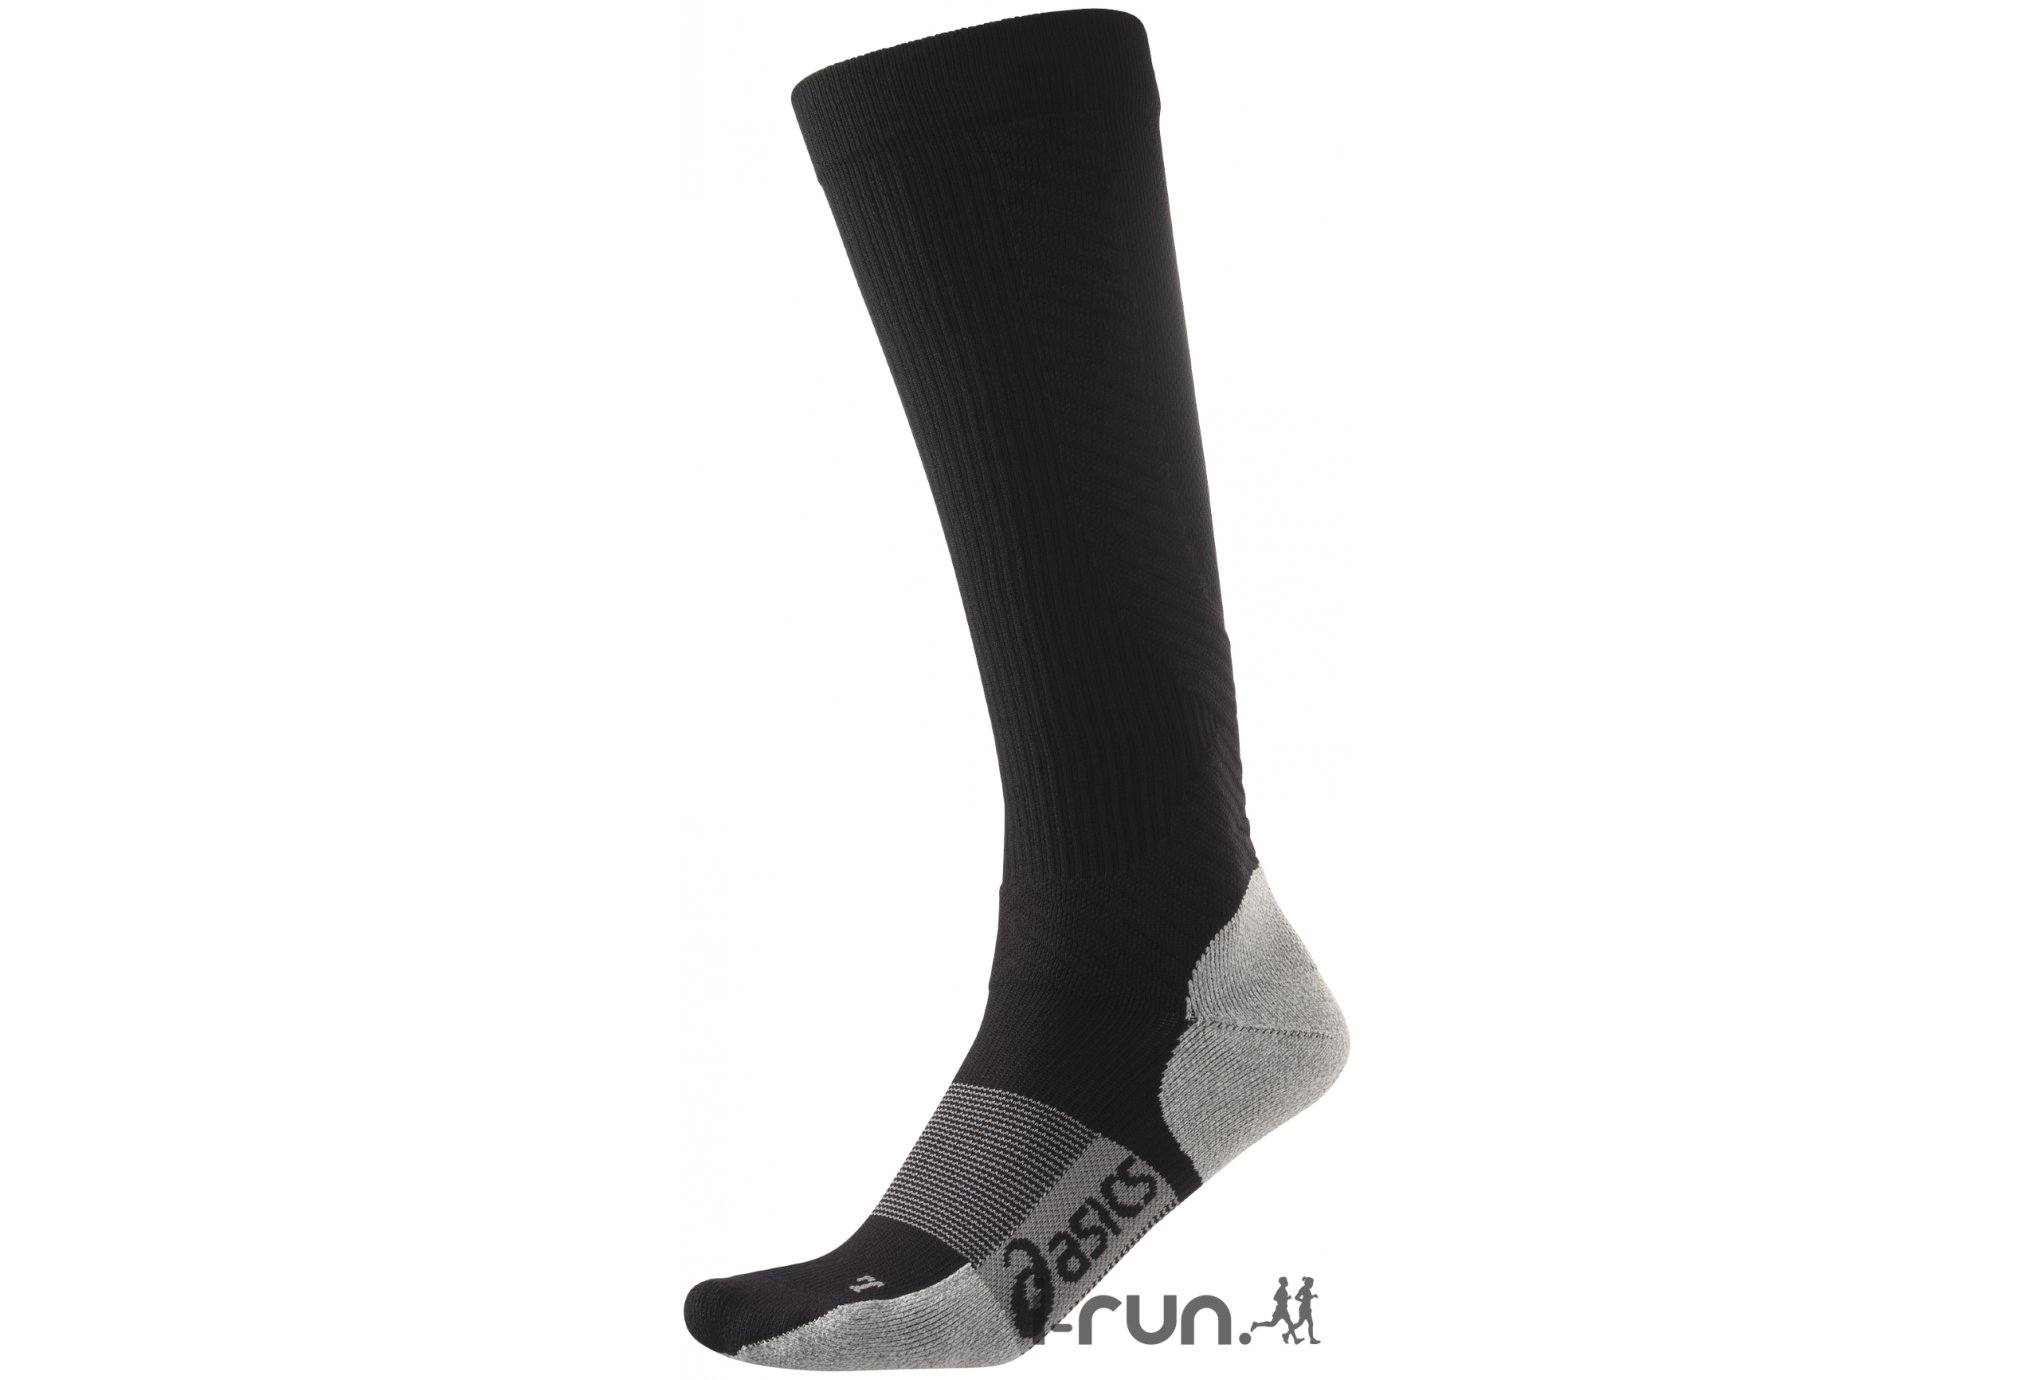 Asics Chaussette Compression Support Sock Chaussettes